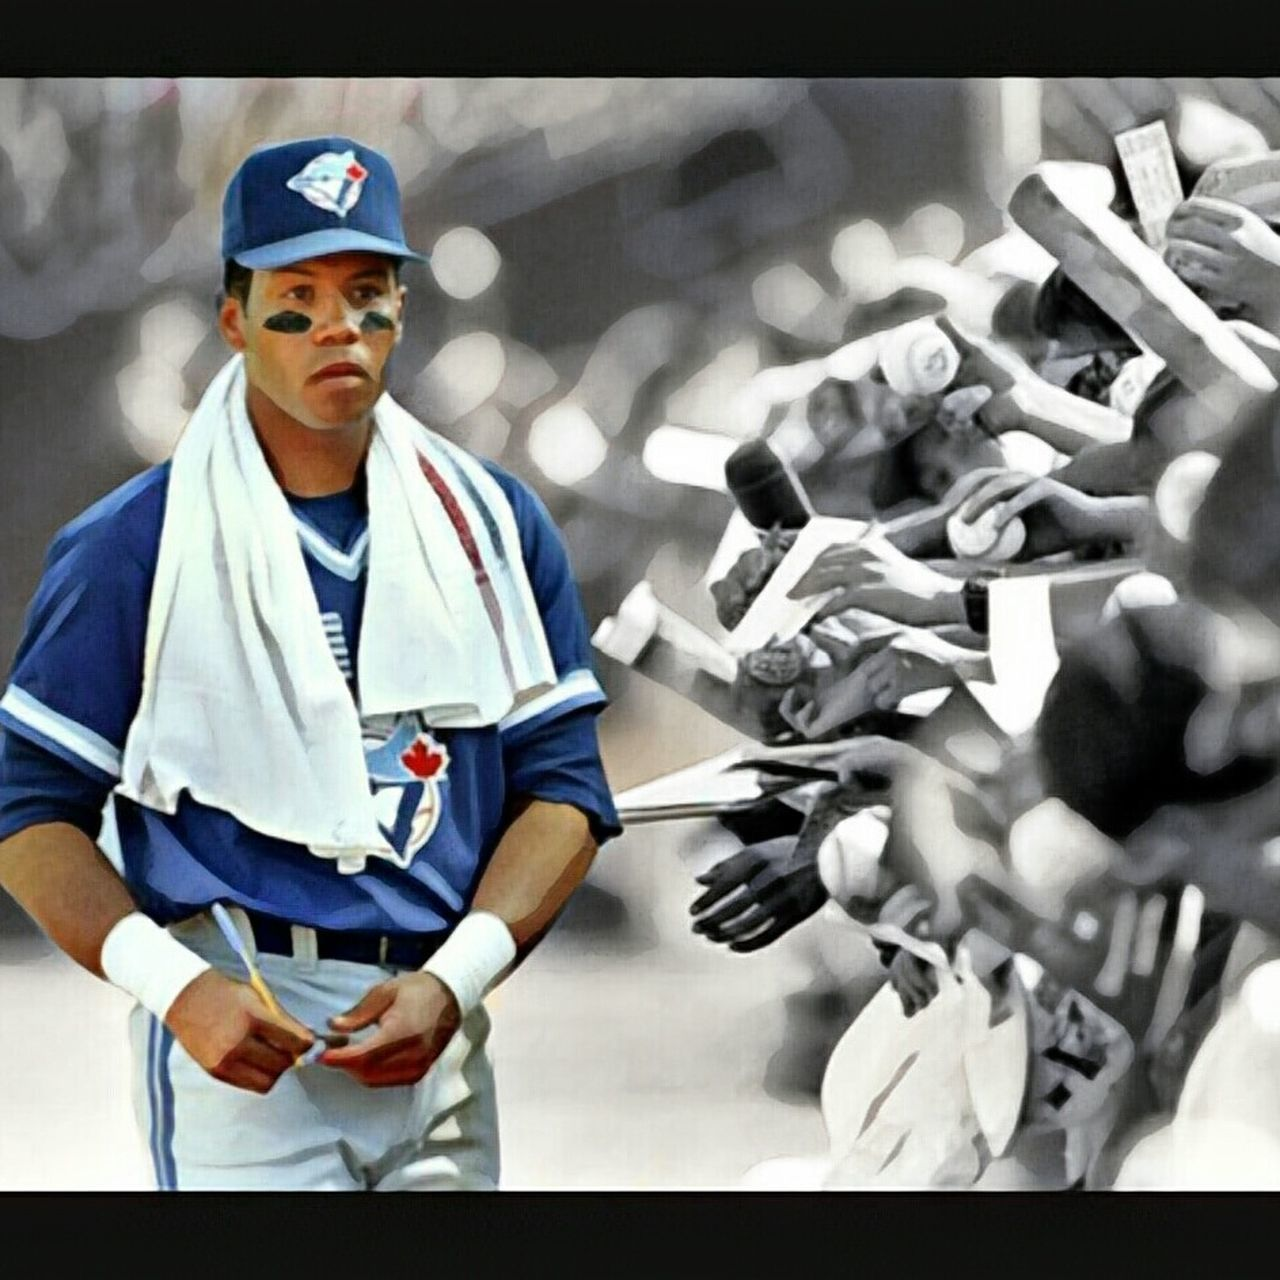 The good ol days of baseball. Roberto Alomar Robbie Alomar Toronto Blue Jays Toronto Blue Jays 6 Spot Light  Second Base 12 Hall Of Famer '92-'93 Champions Signing Autographs Fans Idol Baseball ⚾ Baseball Player Fan Favourite